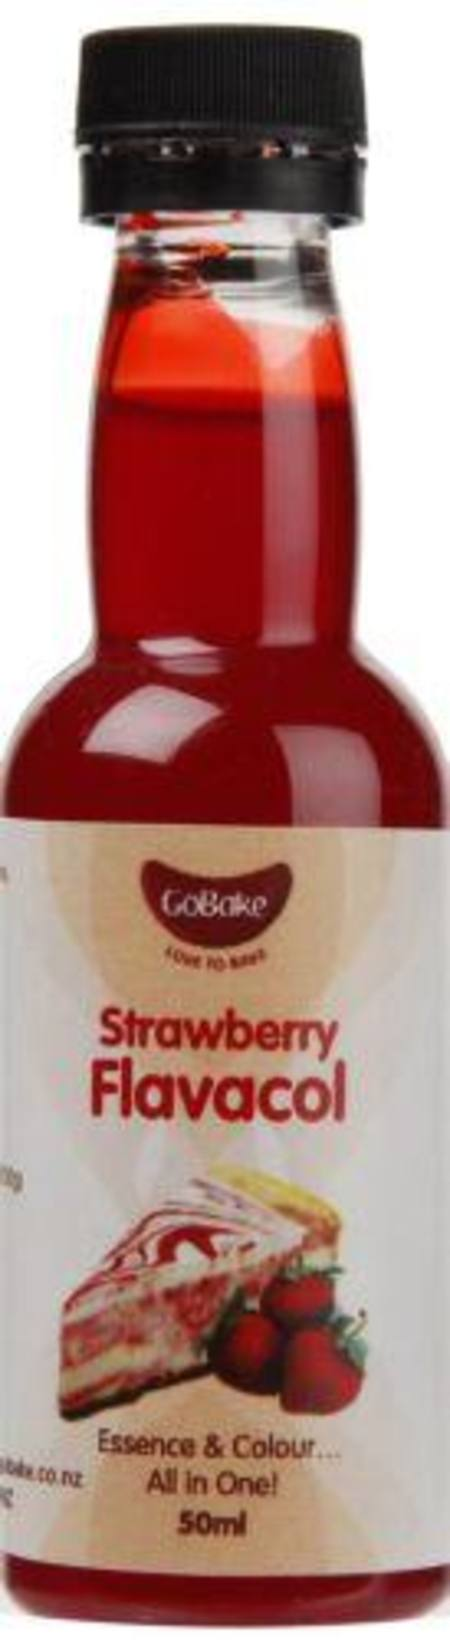 Strawberry Flavacol